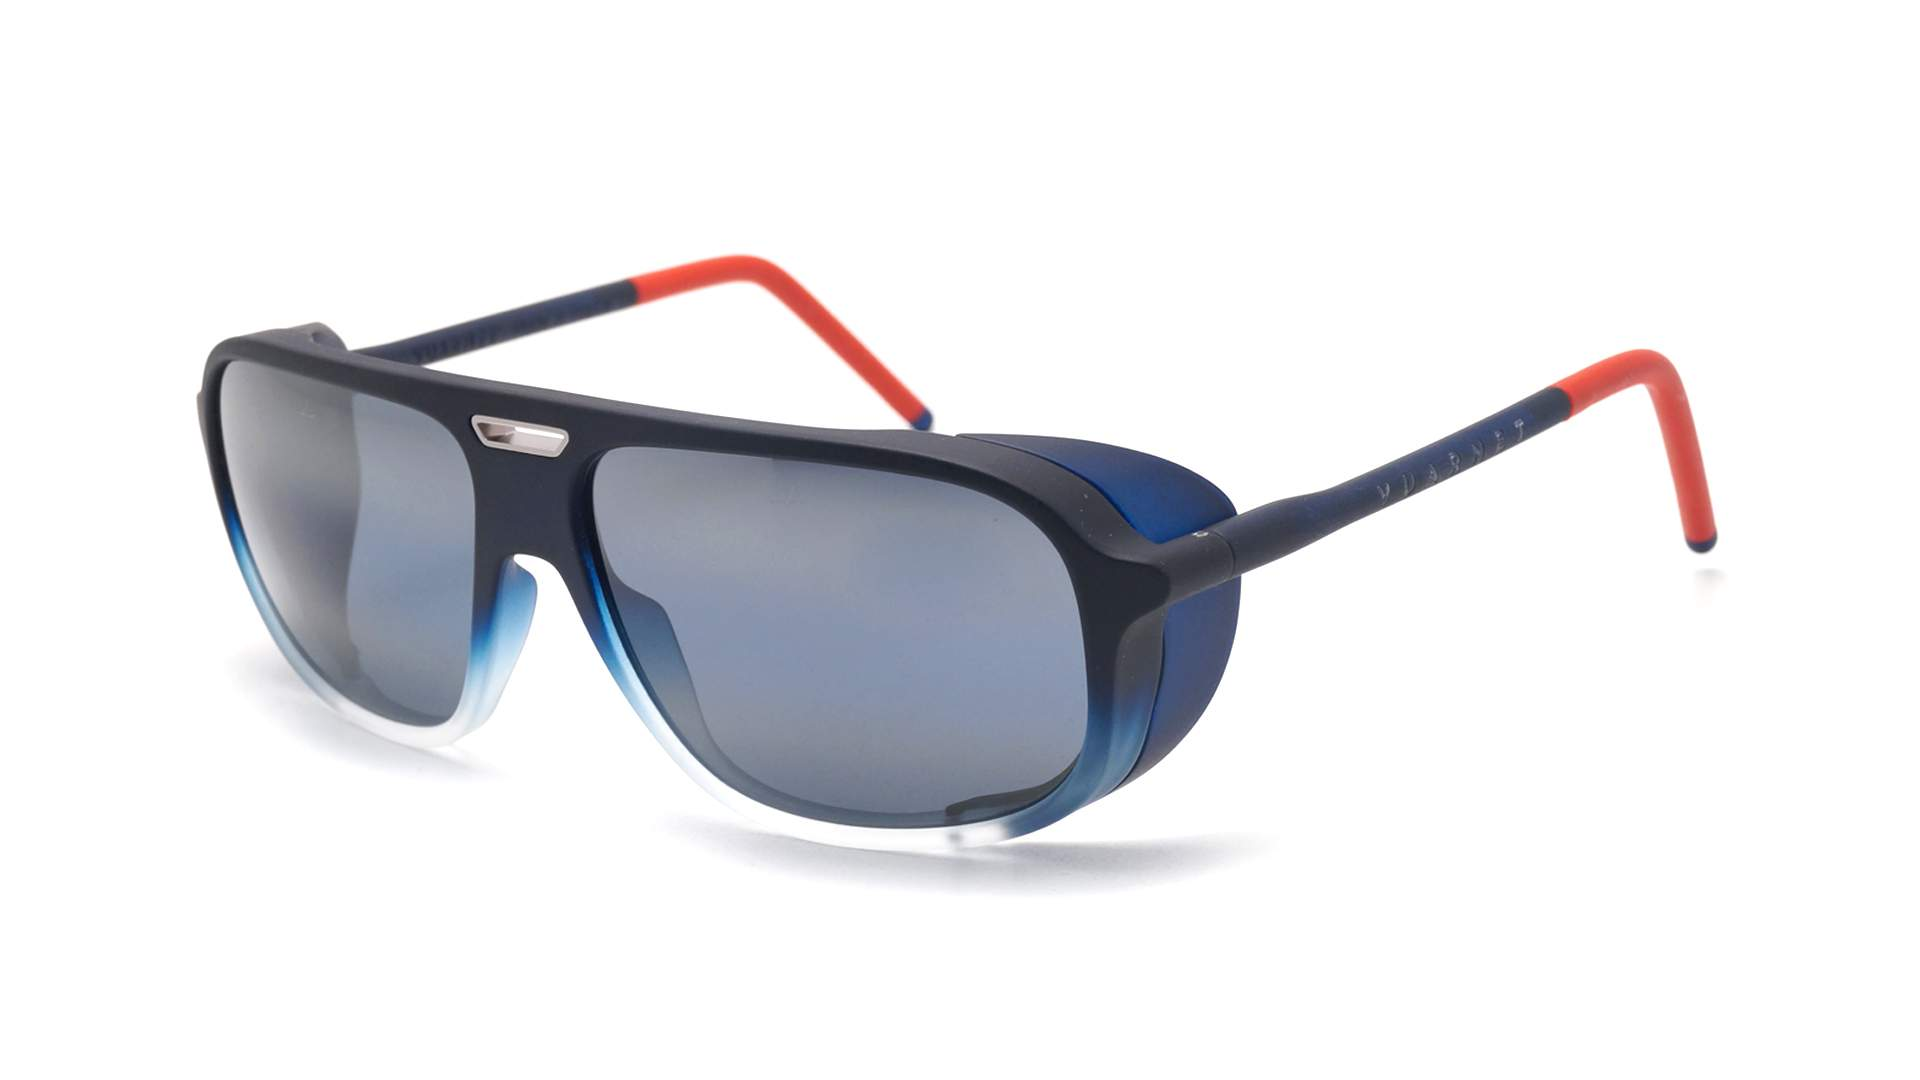 9cc777ae0a6 Sunglasses Vuarnet Ice Multicolor Matte Blue polarlynx VL1811 0005 60-15  Large Polarized Gradient Mirror